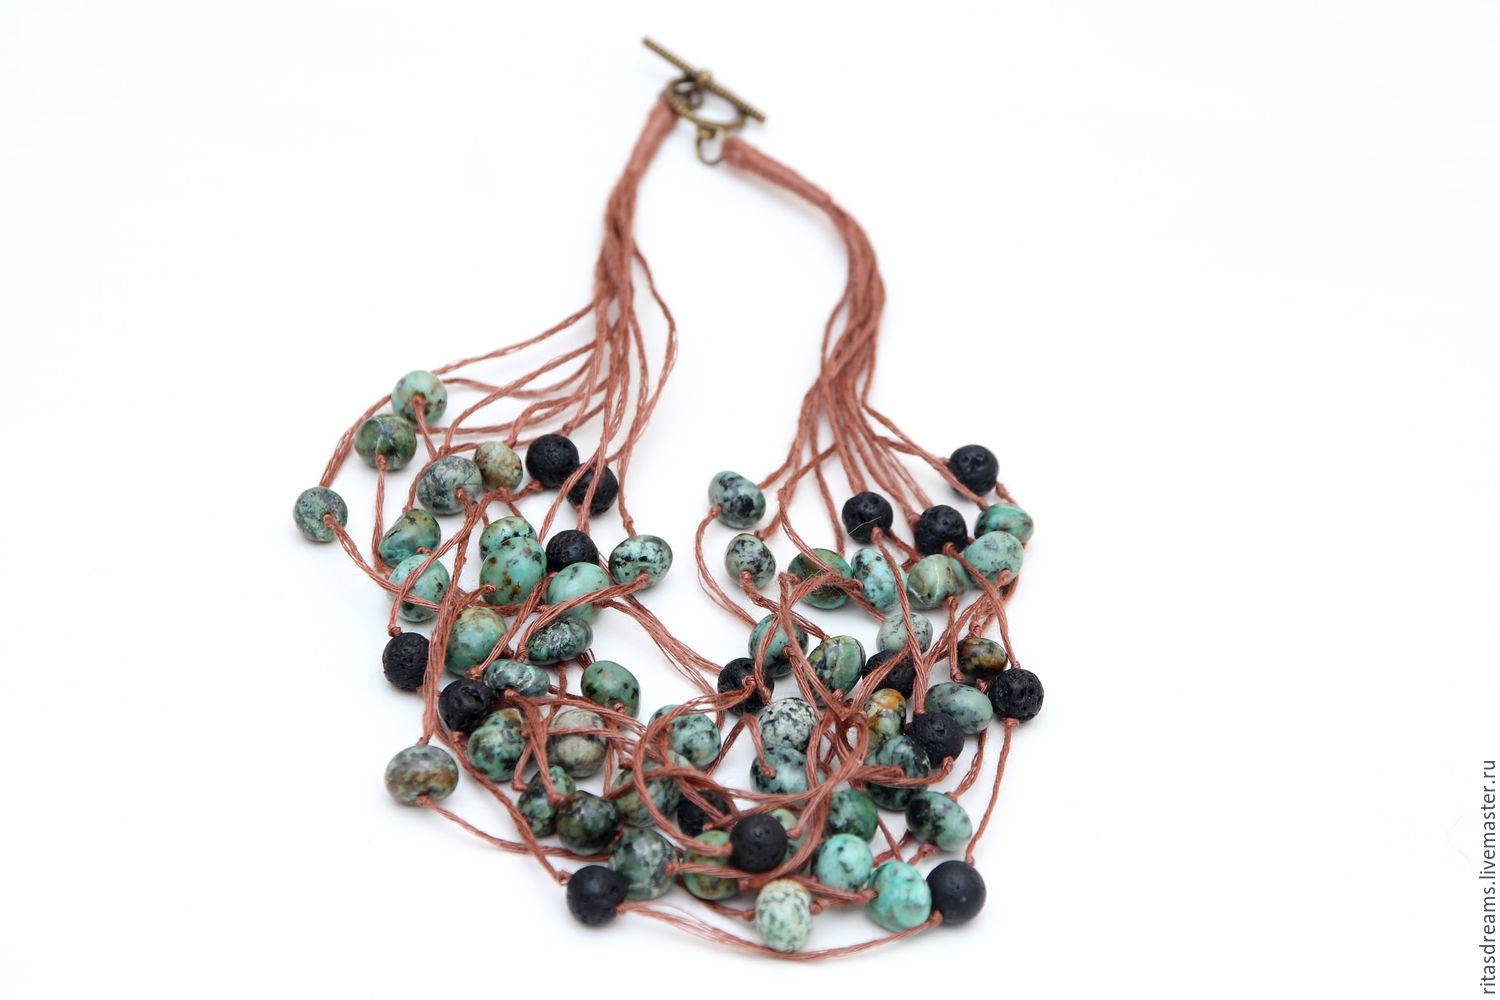 Linen thread the color of cinnamon, coal-black lava and brownish-green Jasper are easy and simple necklace for every day. necklace length 46 cm.